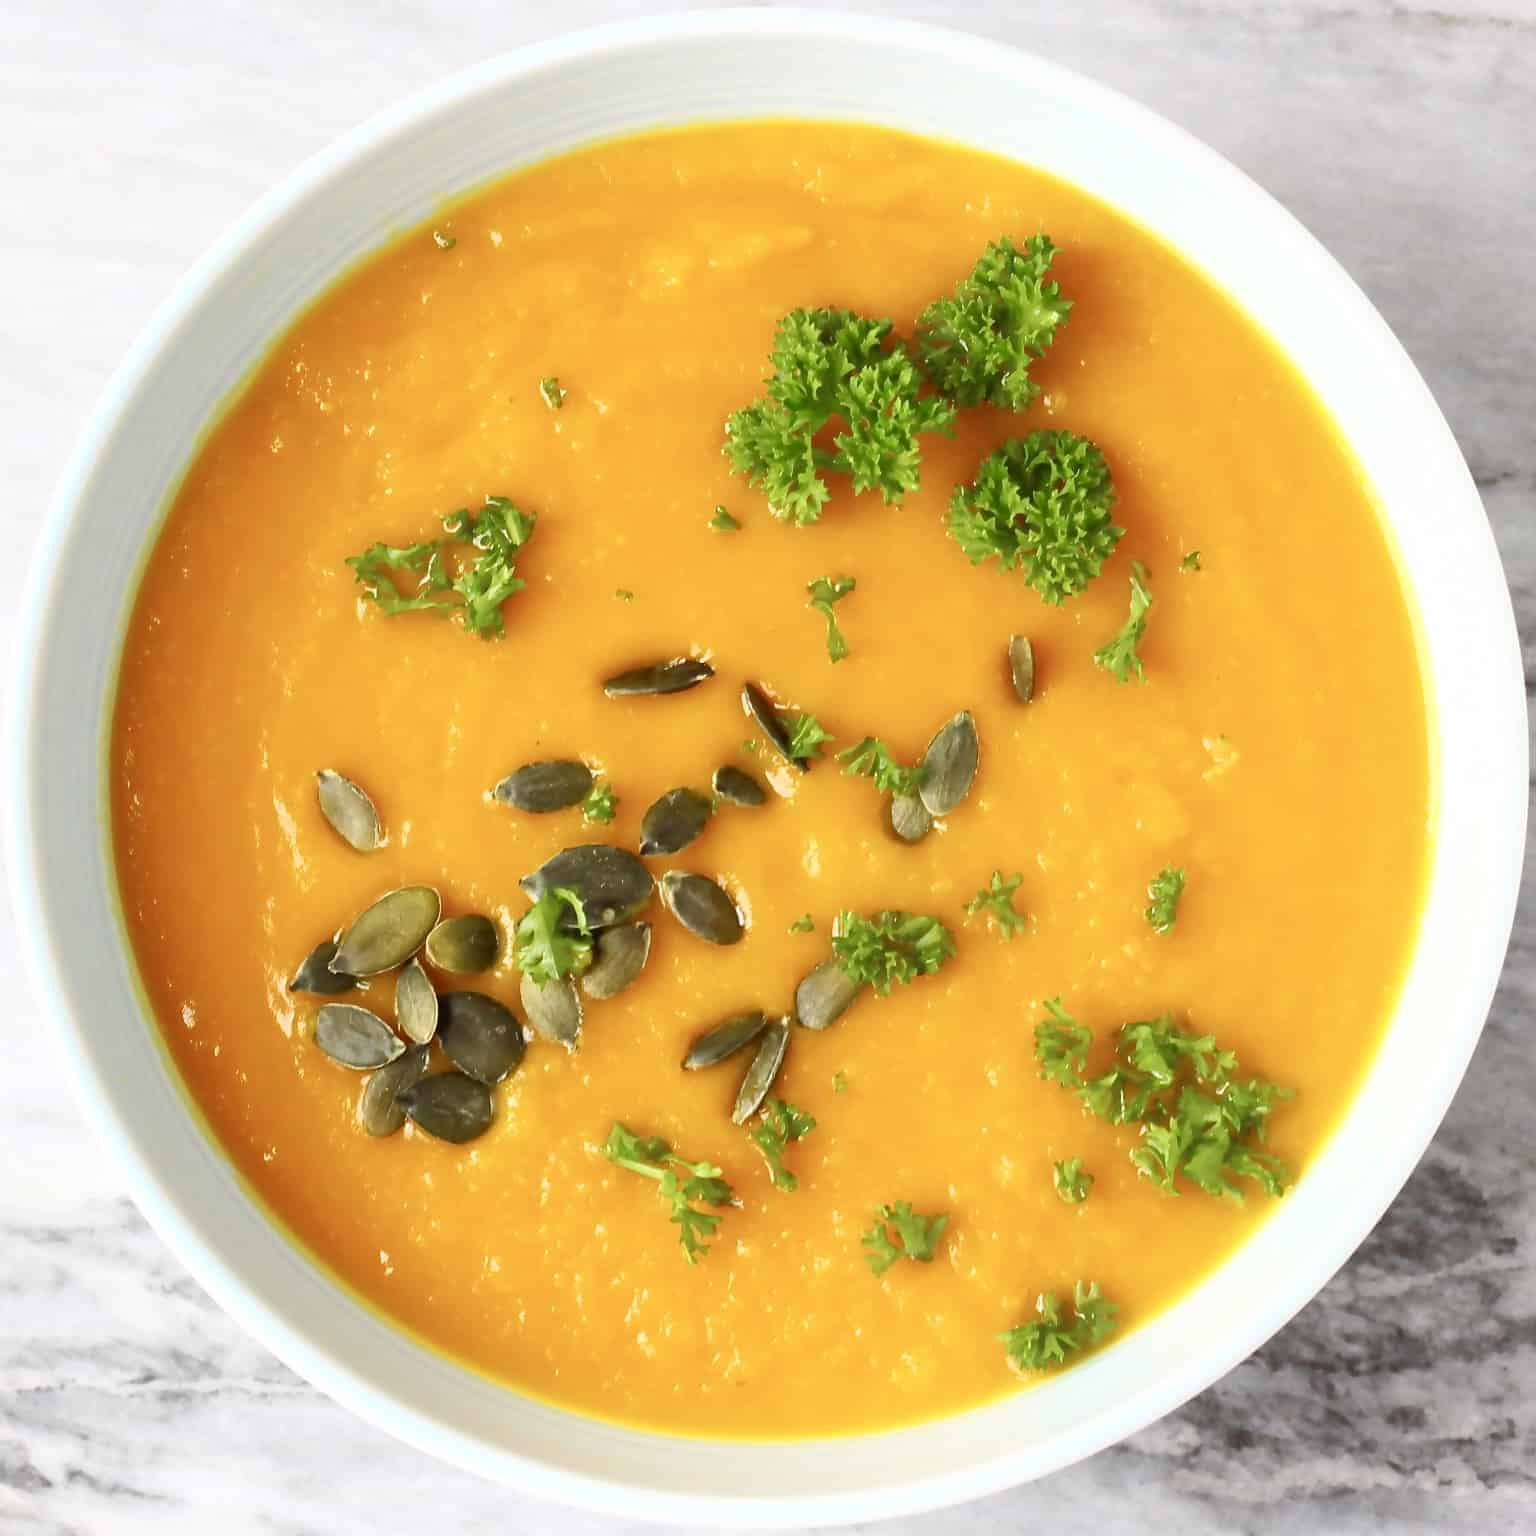 Photo of smooth orange pumpkin soup topped with green pumpkin seeds and curly parsley in a light blue bowl against a marble background